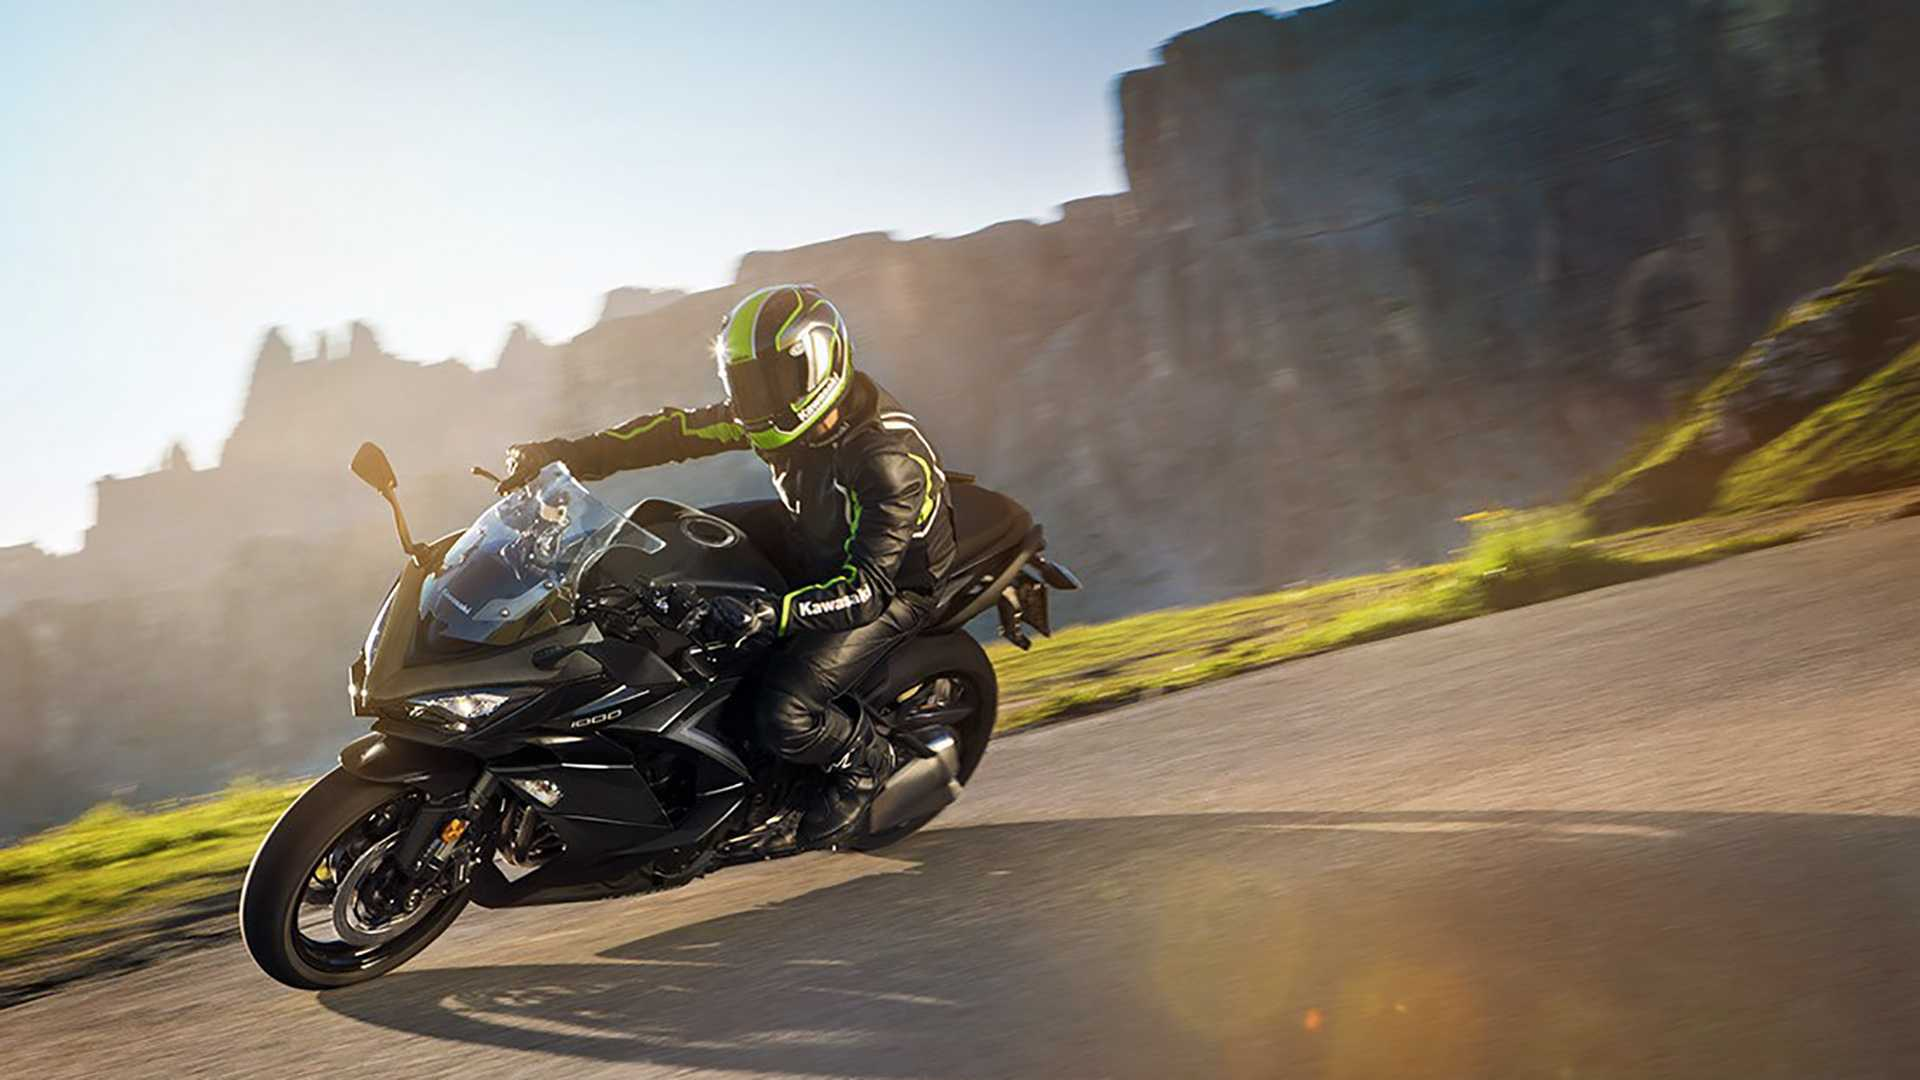 2019 Kawasaki Ninja 1000 Updated Kawasaki Ninja 1000 Shows